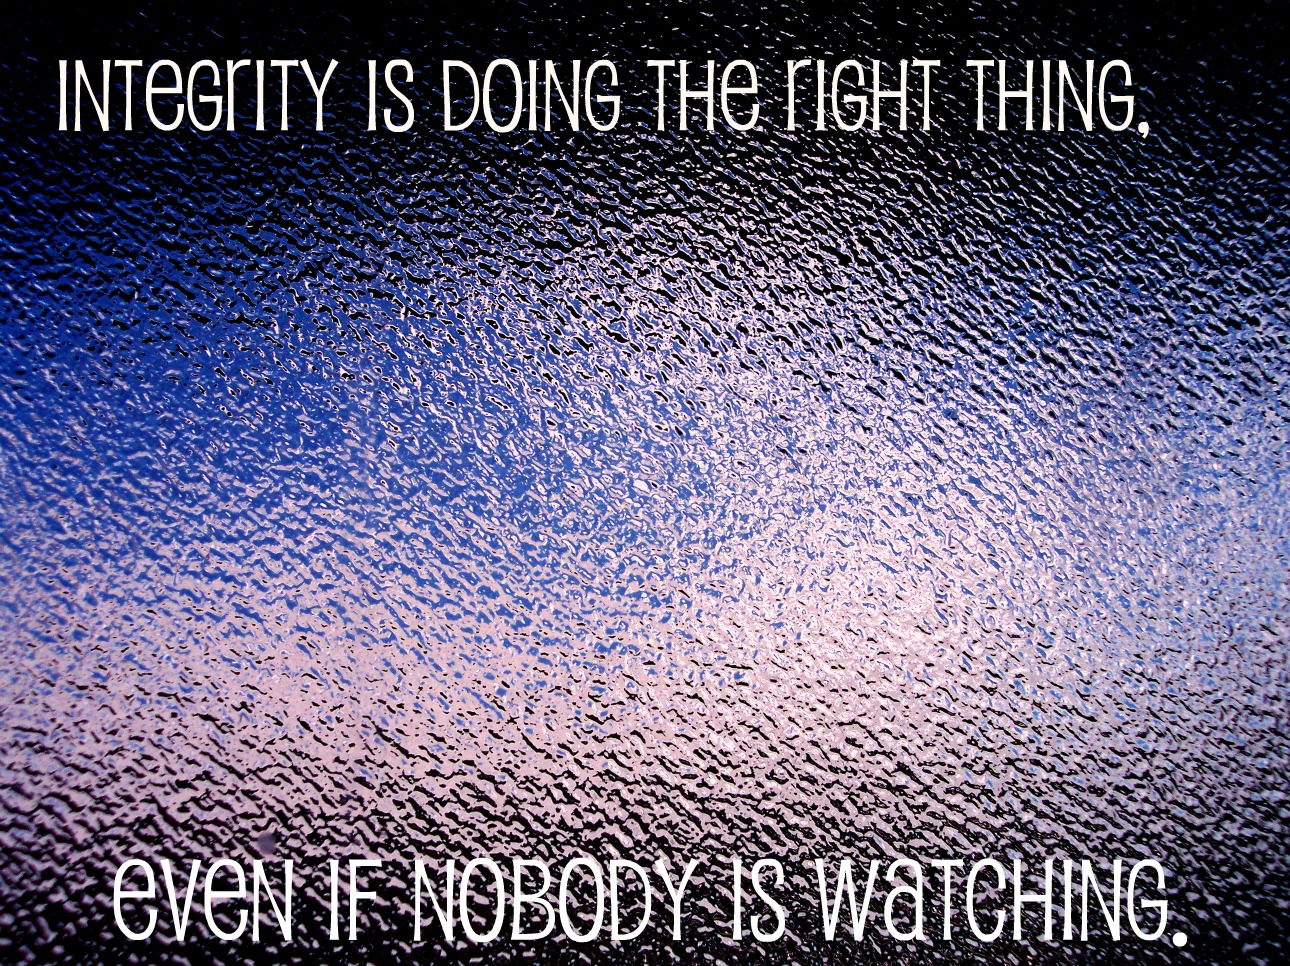 Integrity quote #3